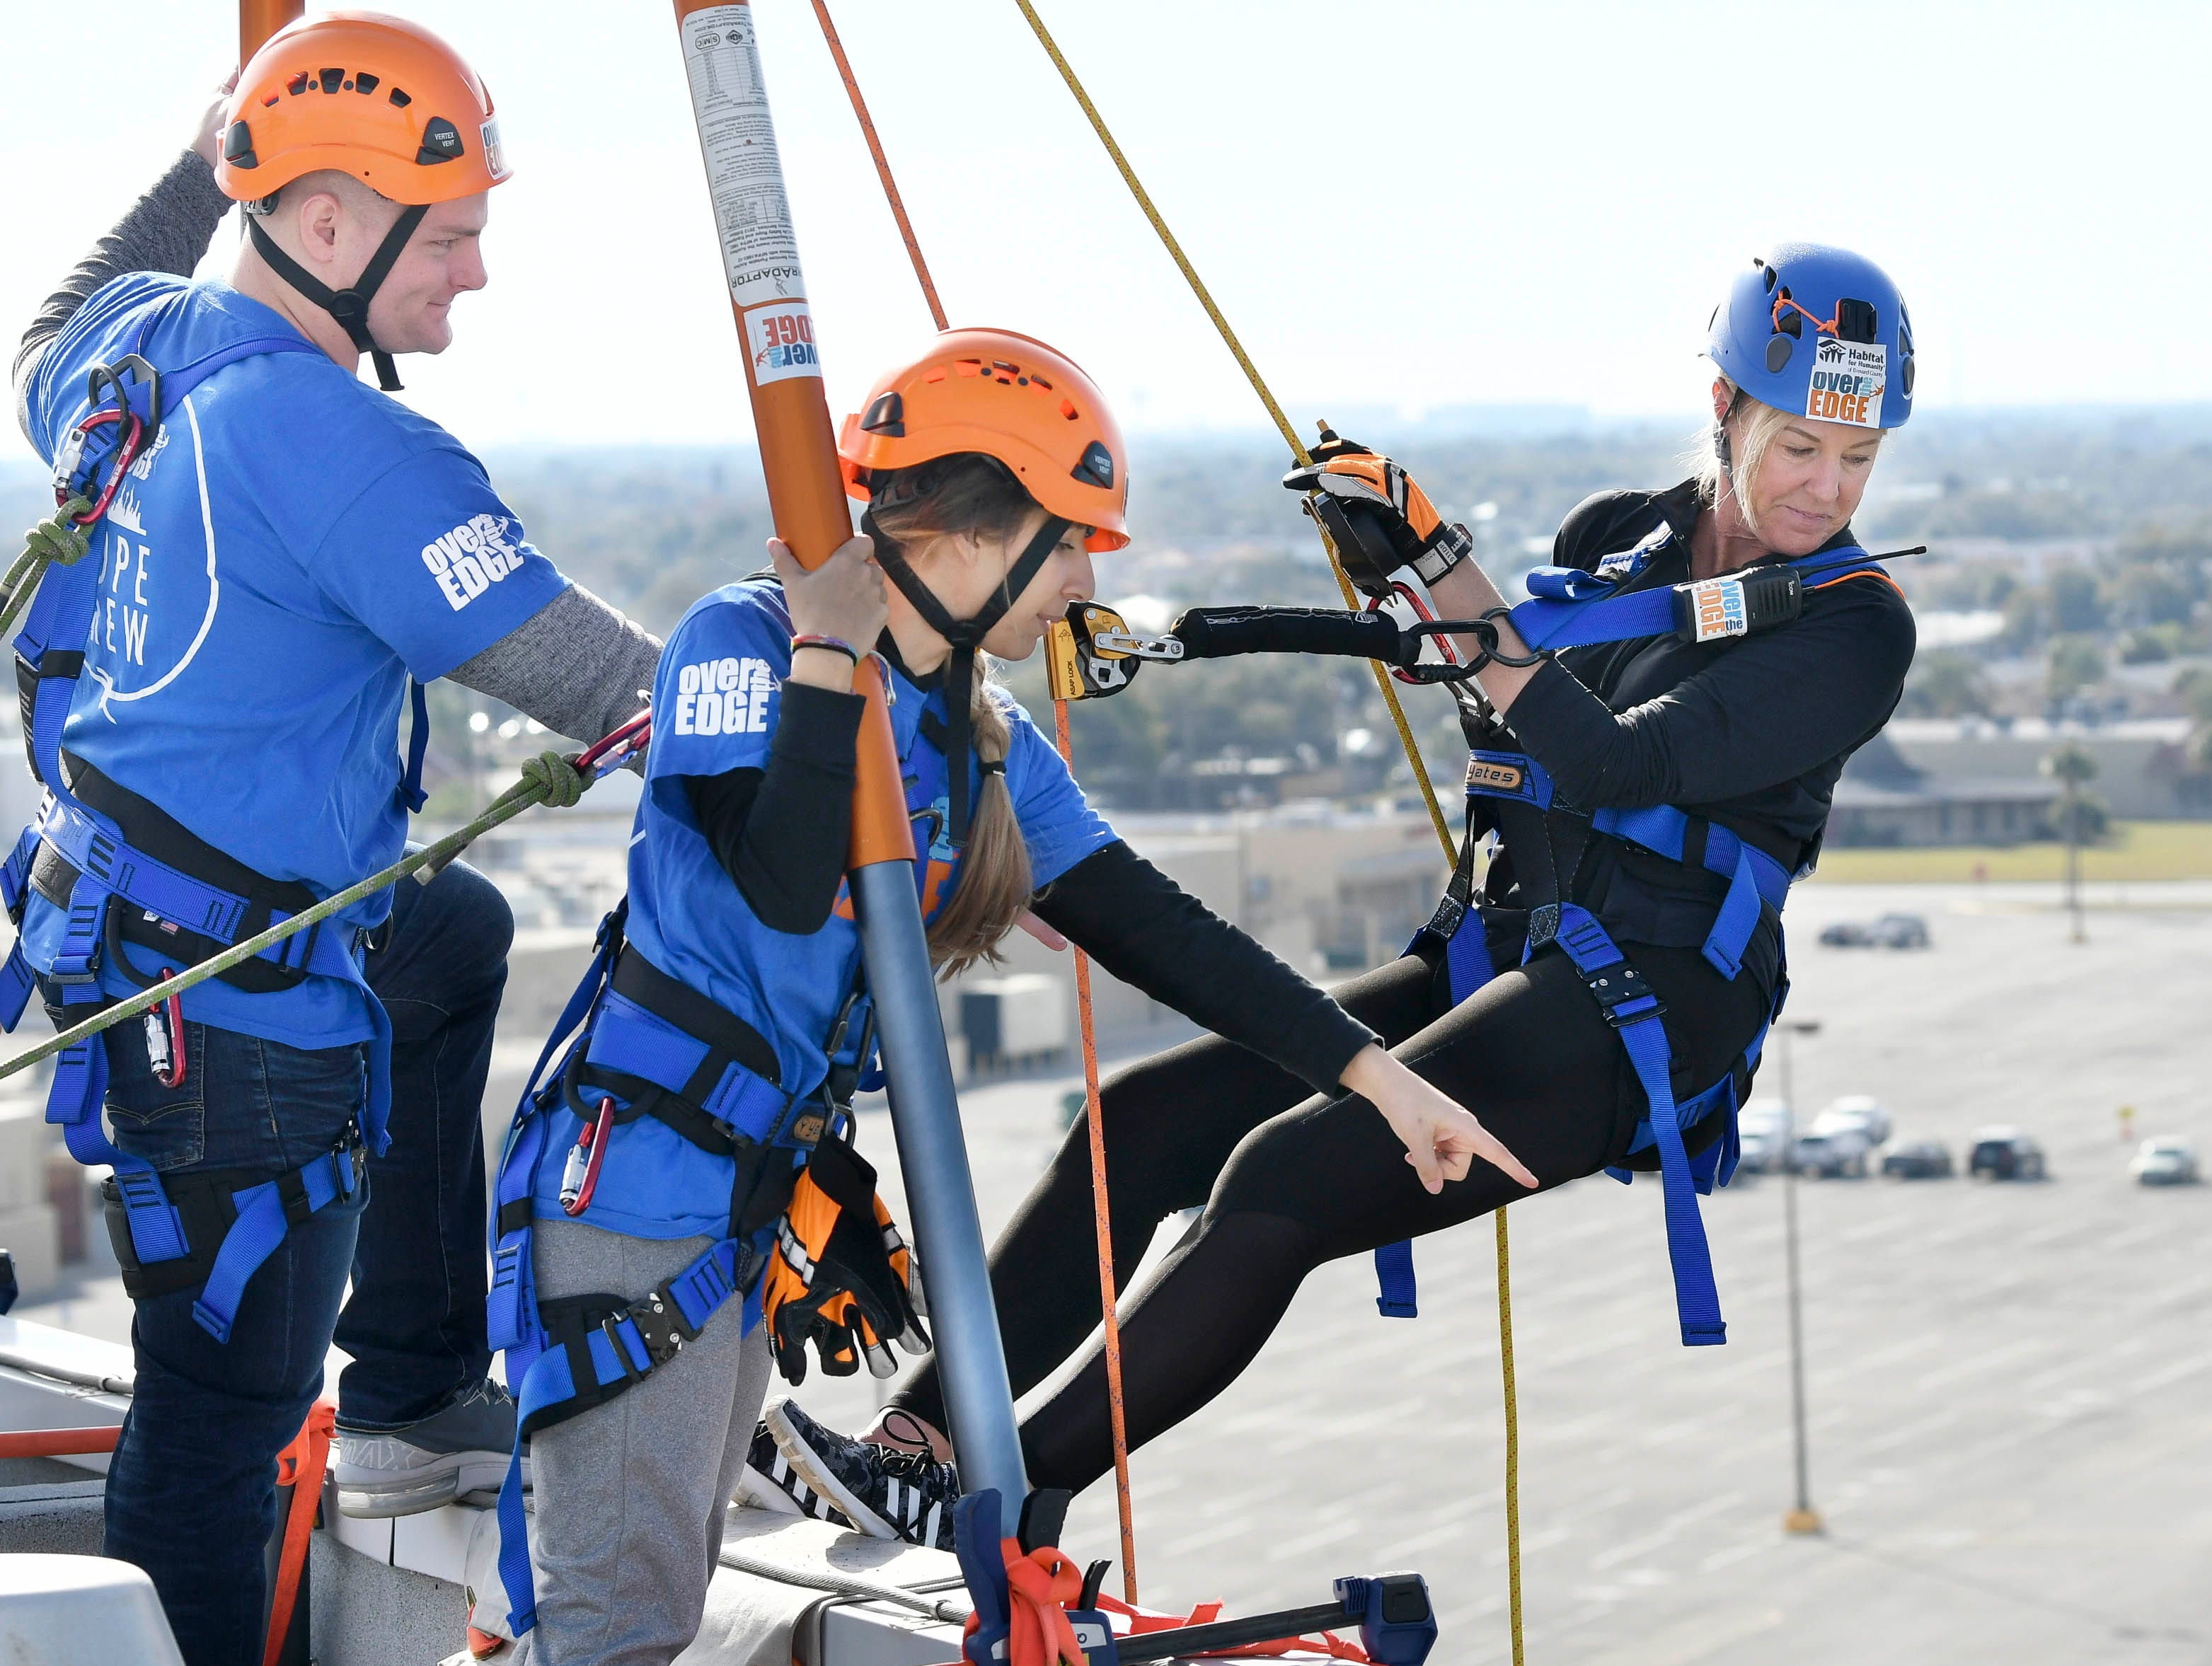 Cheryl Wadsworth prepares to go Over the Edge at the Melbourne Rialto Hilton on Saturday morning. Over the Edge is a fundraiser for Habitat Humanity of Brevard, an organization that helps low-income families buy affordable houses. Teams and individuals raised money for the chance to rappel eight stories down the Hilton.